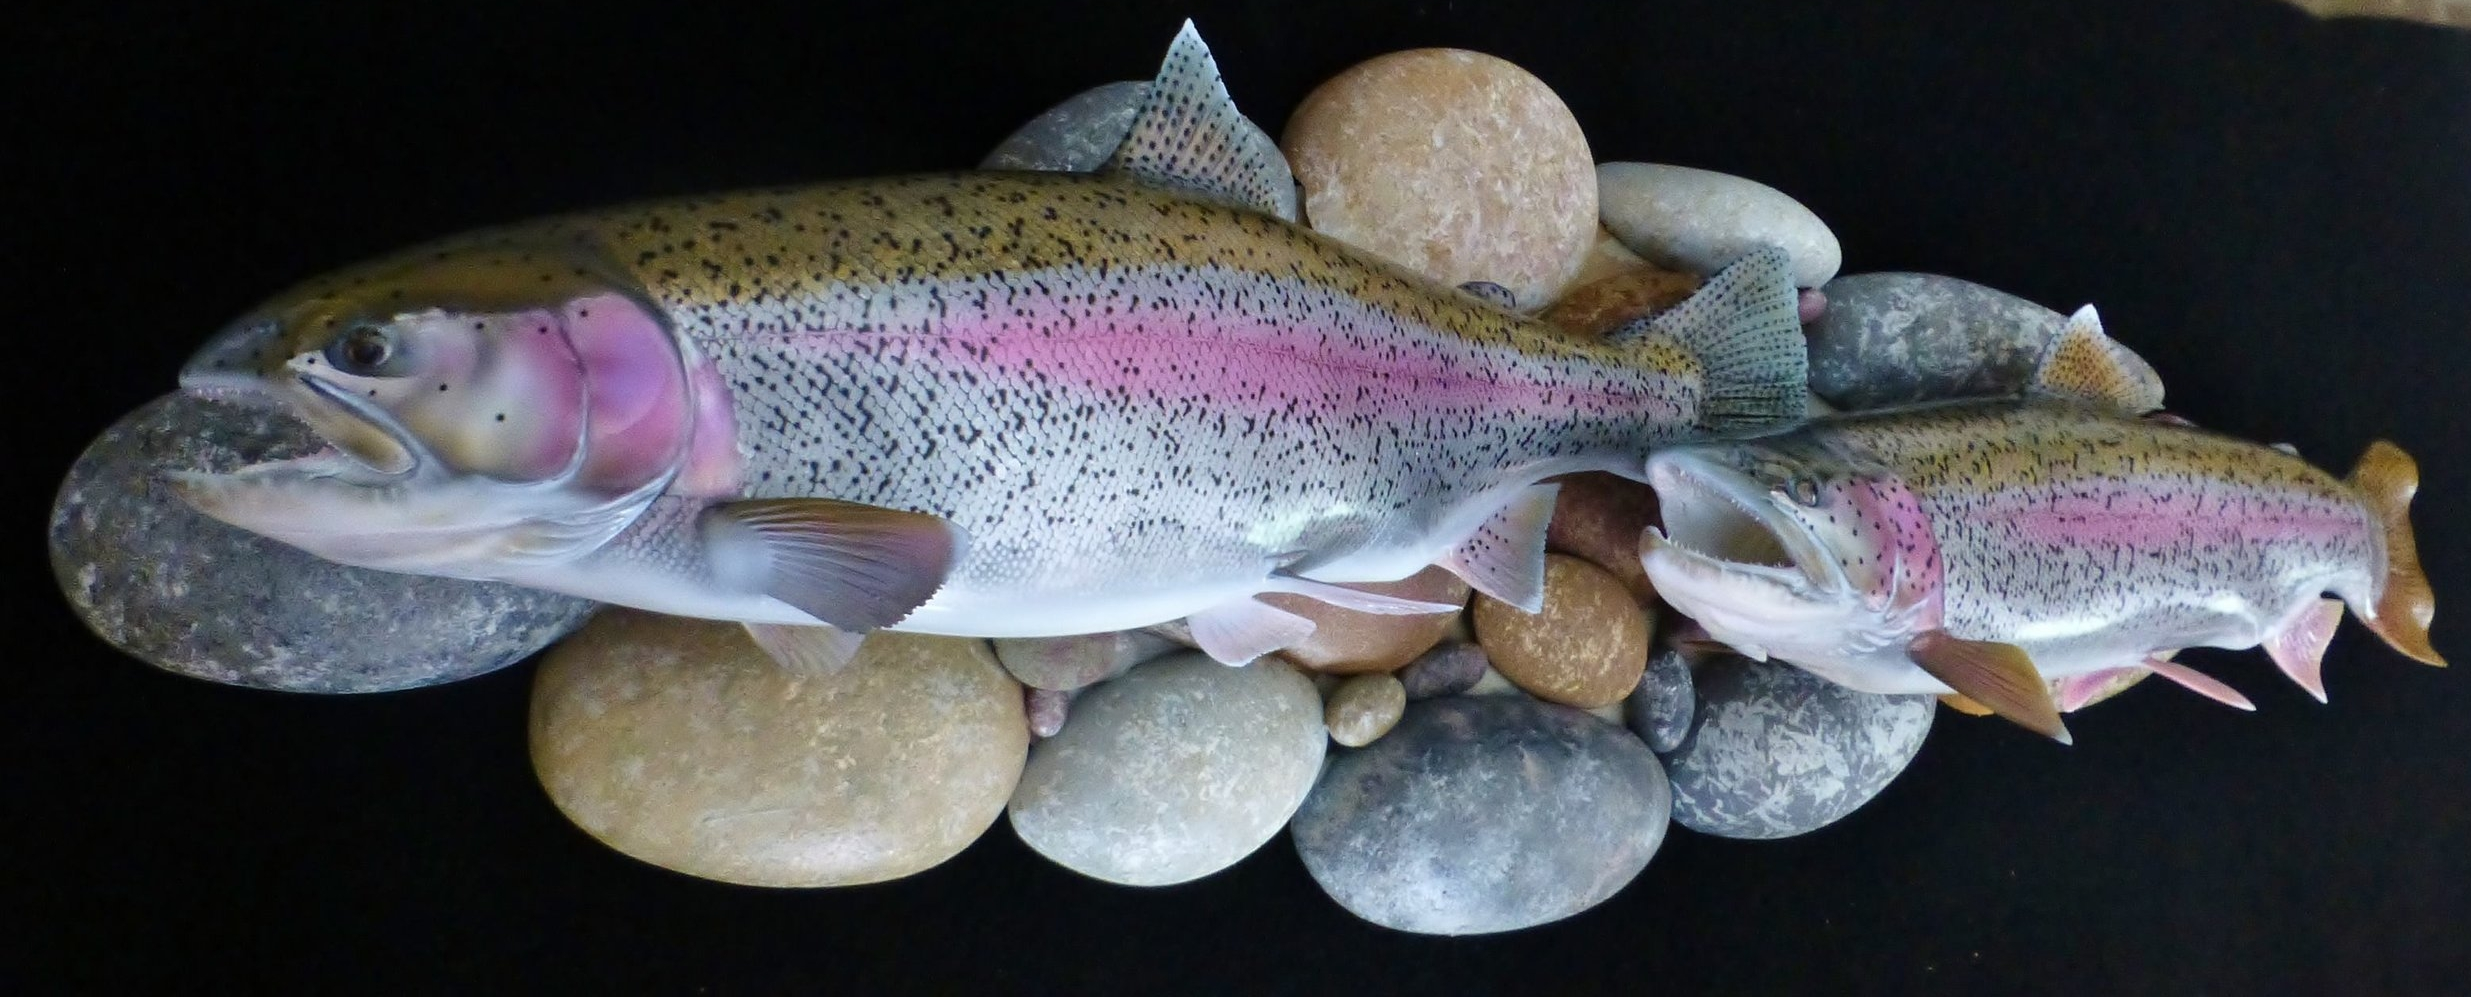 Kenai rainbow trout fish art replica sculpture Luke Filmer Blackwater replicas